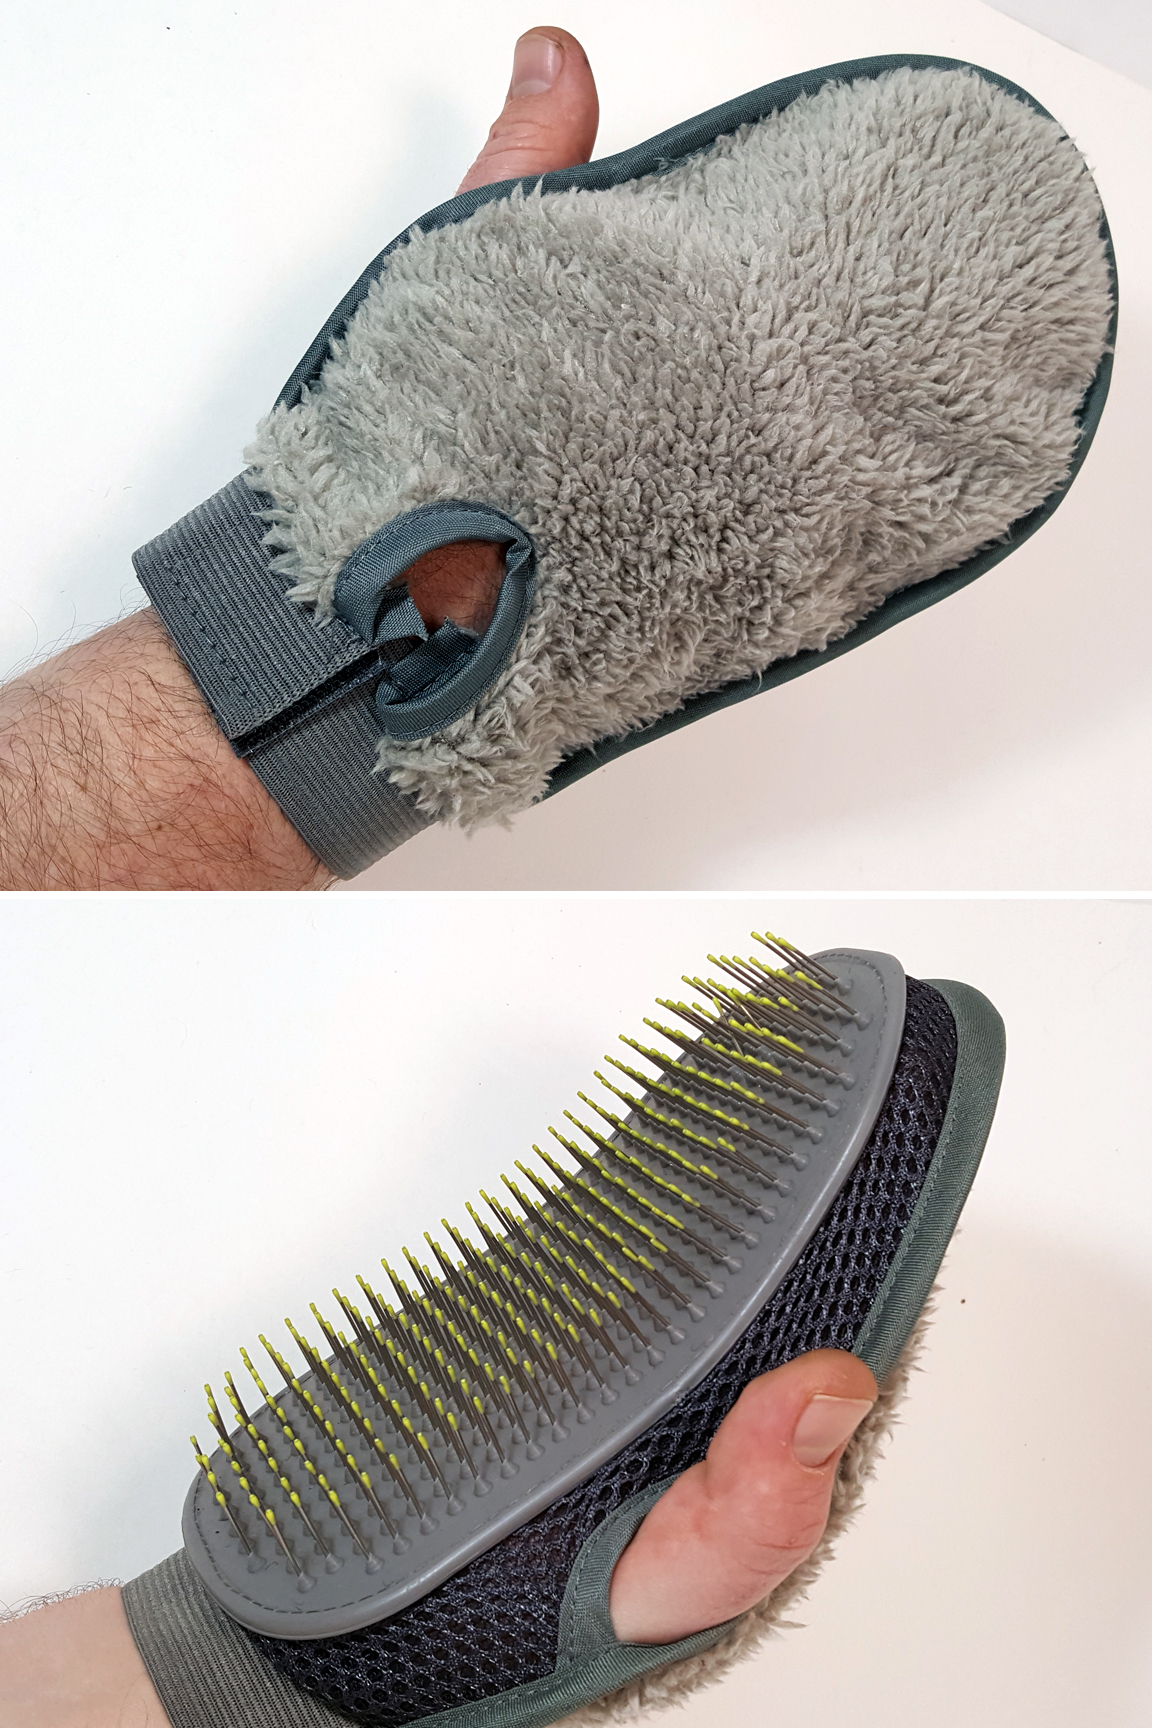 Mitt detail: Flexible brush on one side. Plush material on the other side.